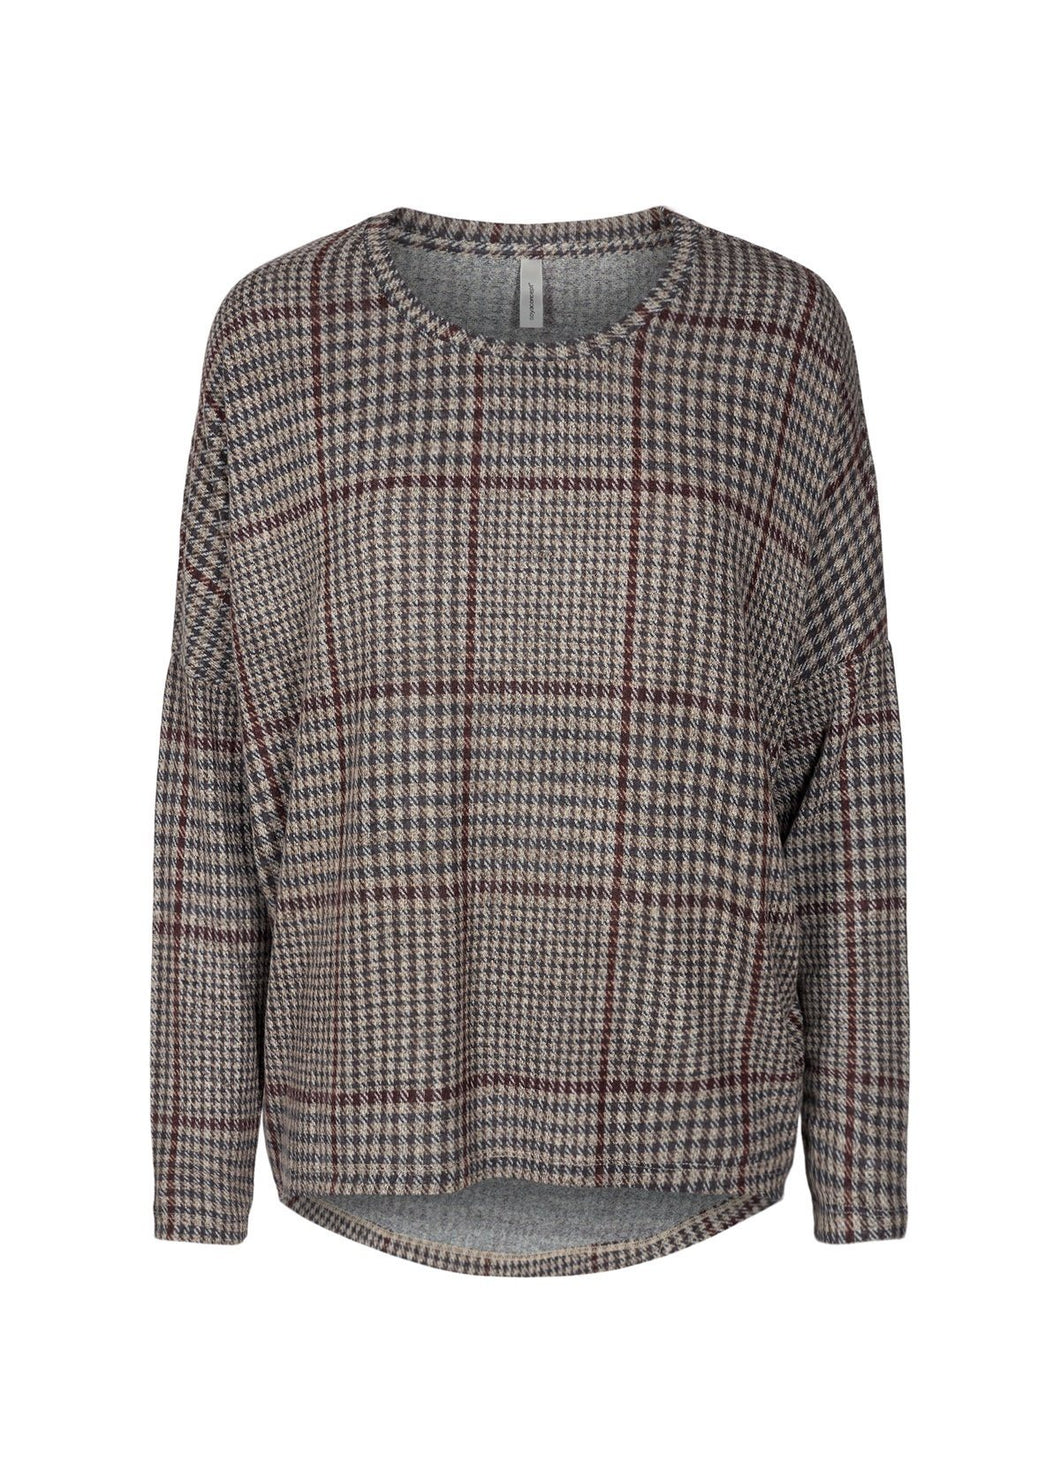 Biara Plaid Top with Maroon Stripe - Renaissance Boutiques Ireland